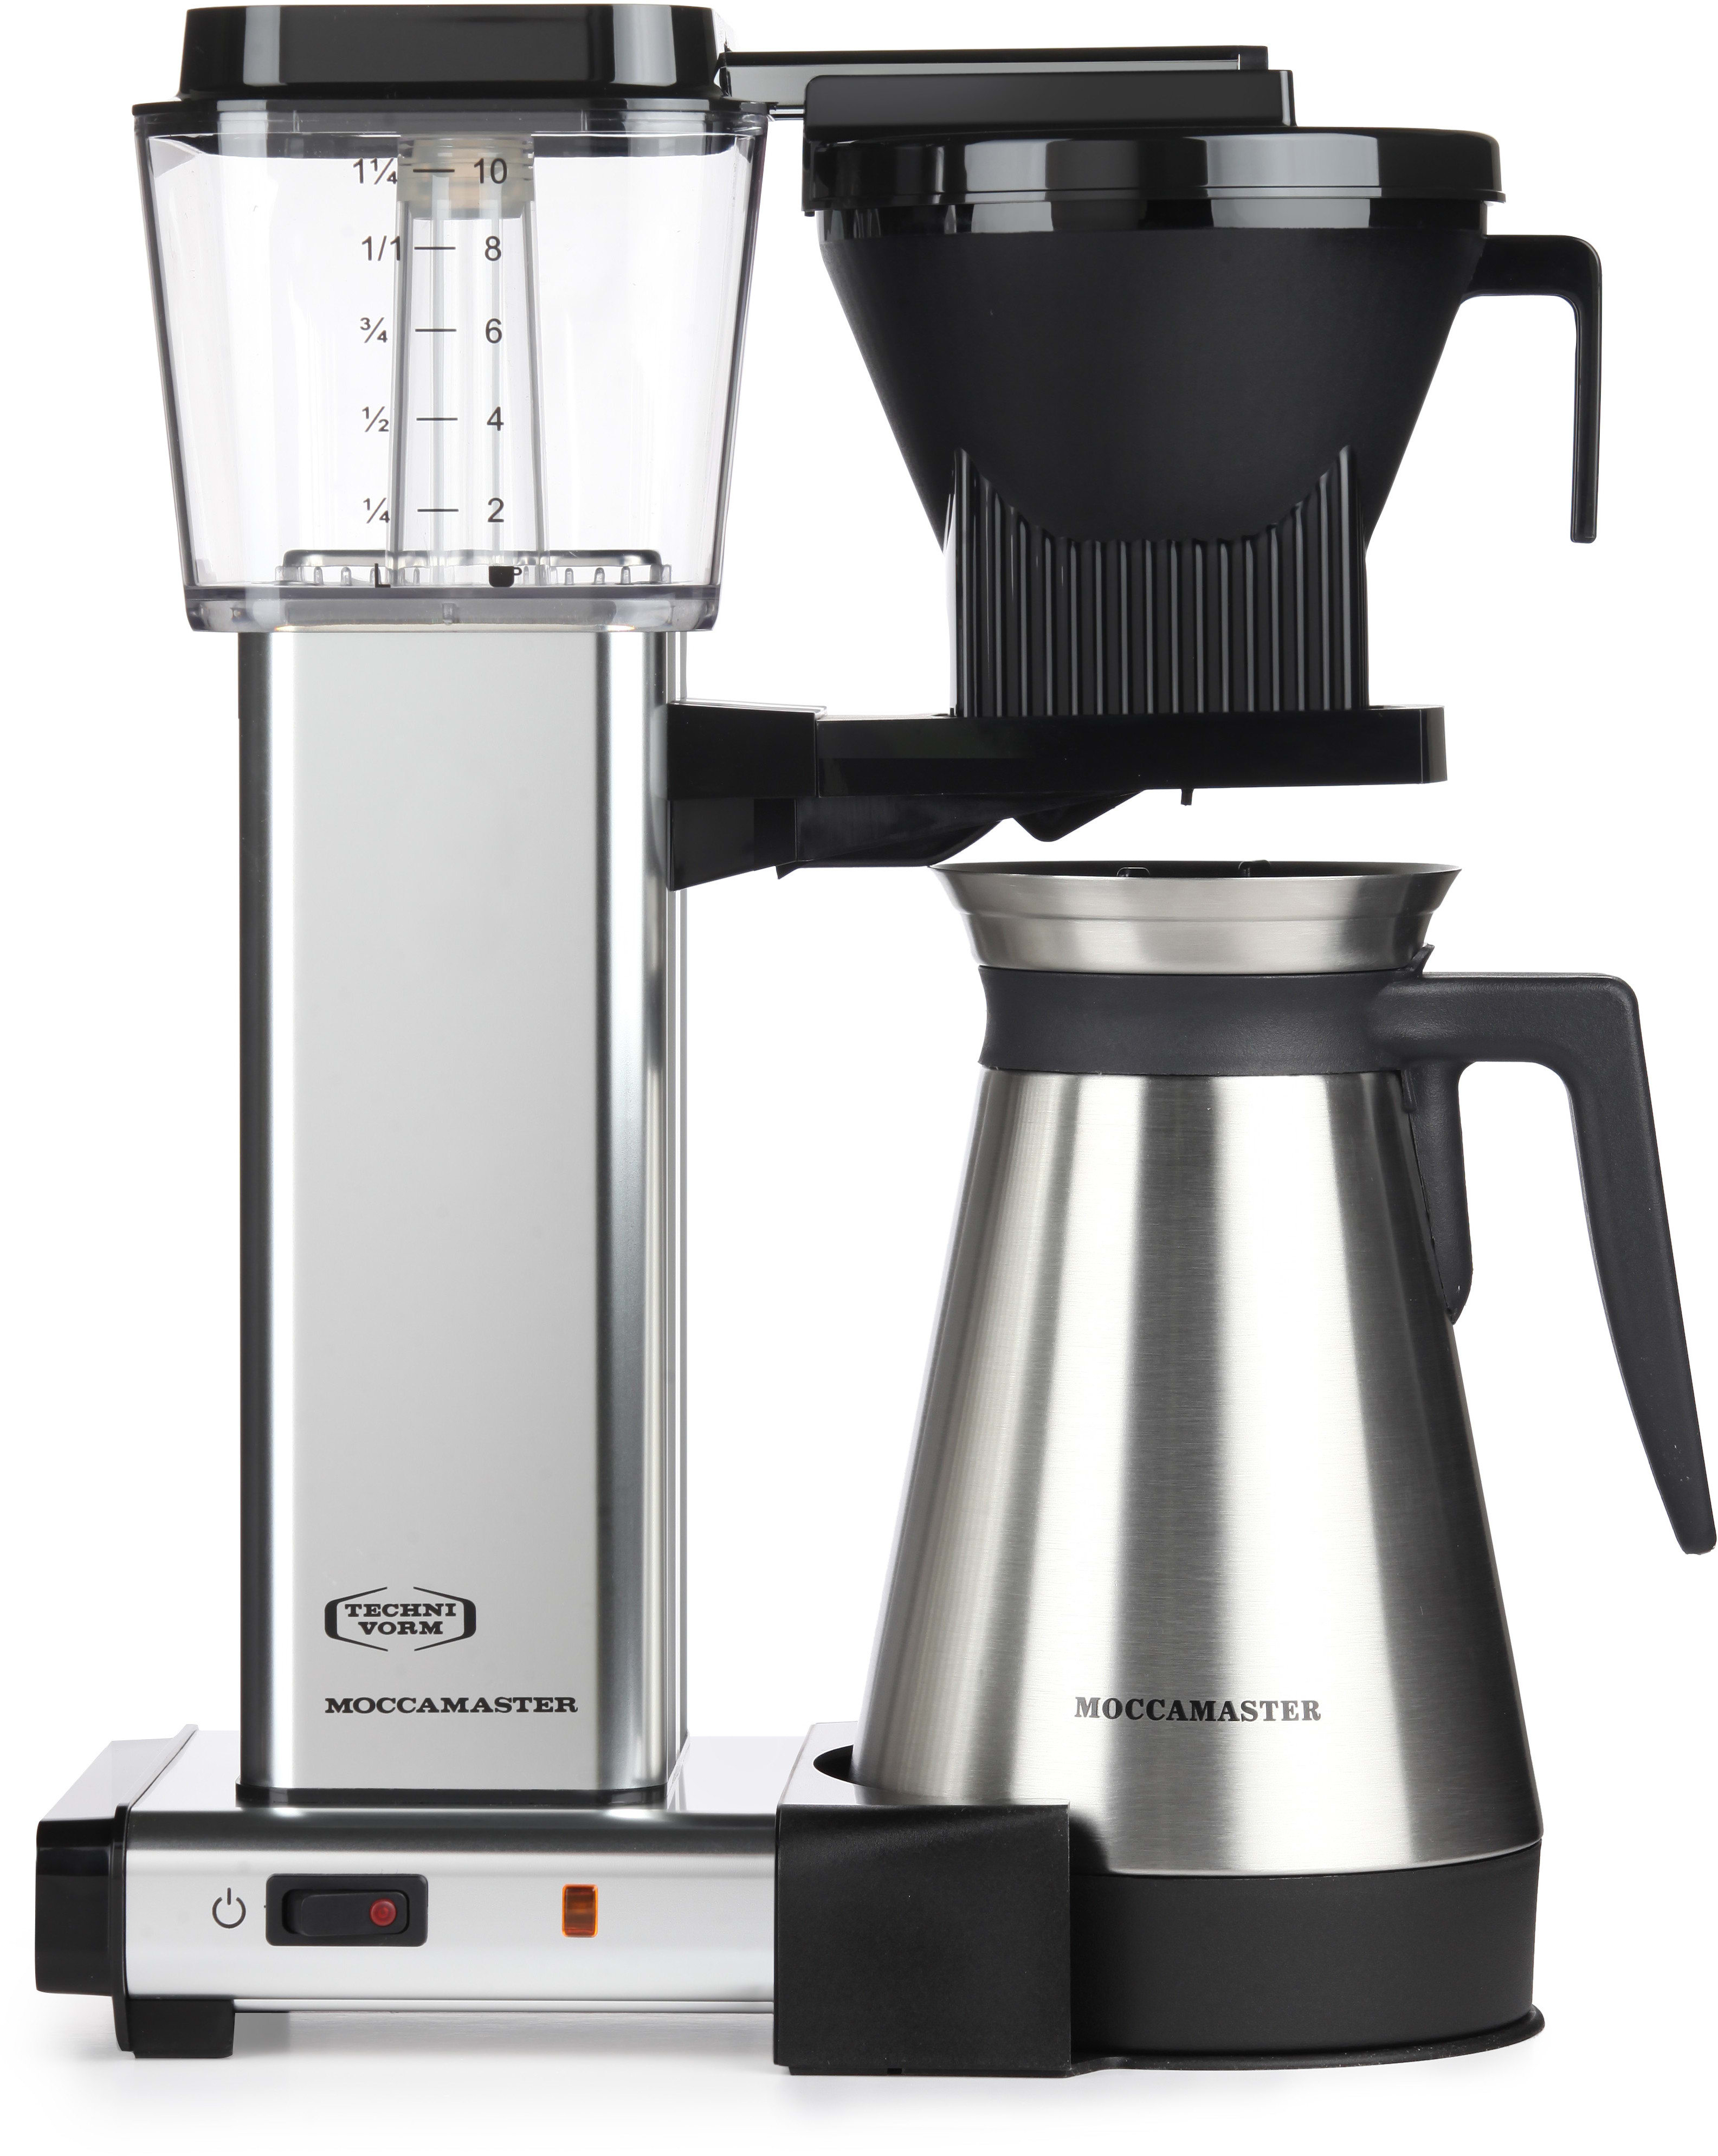 Coffee Maker With Copper Heating Element : Technivorm 79312 Moccamaster KBGT Drip Coffee Maker with Copper Boiling Element, Auto Drip-Stop ...